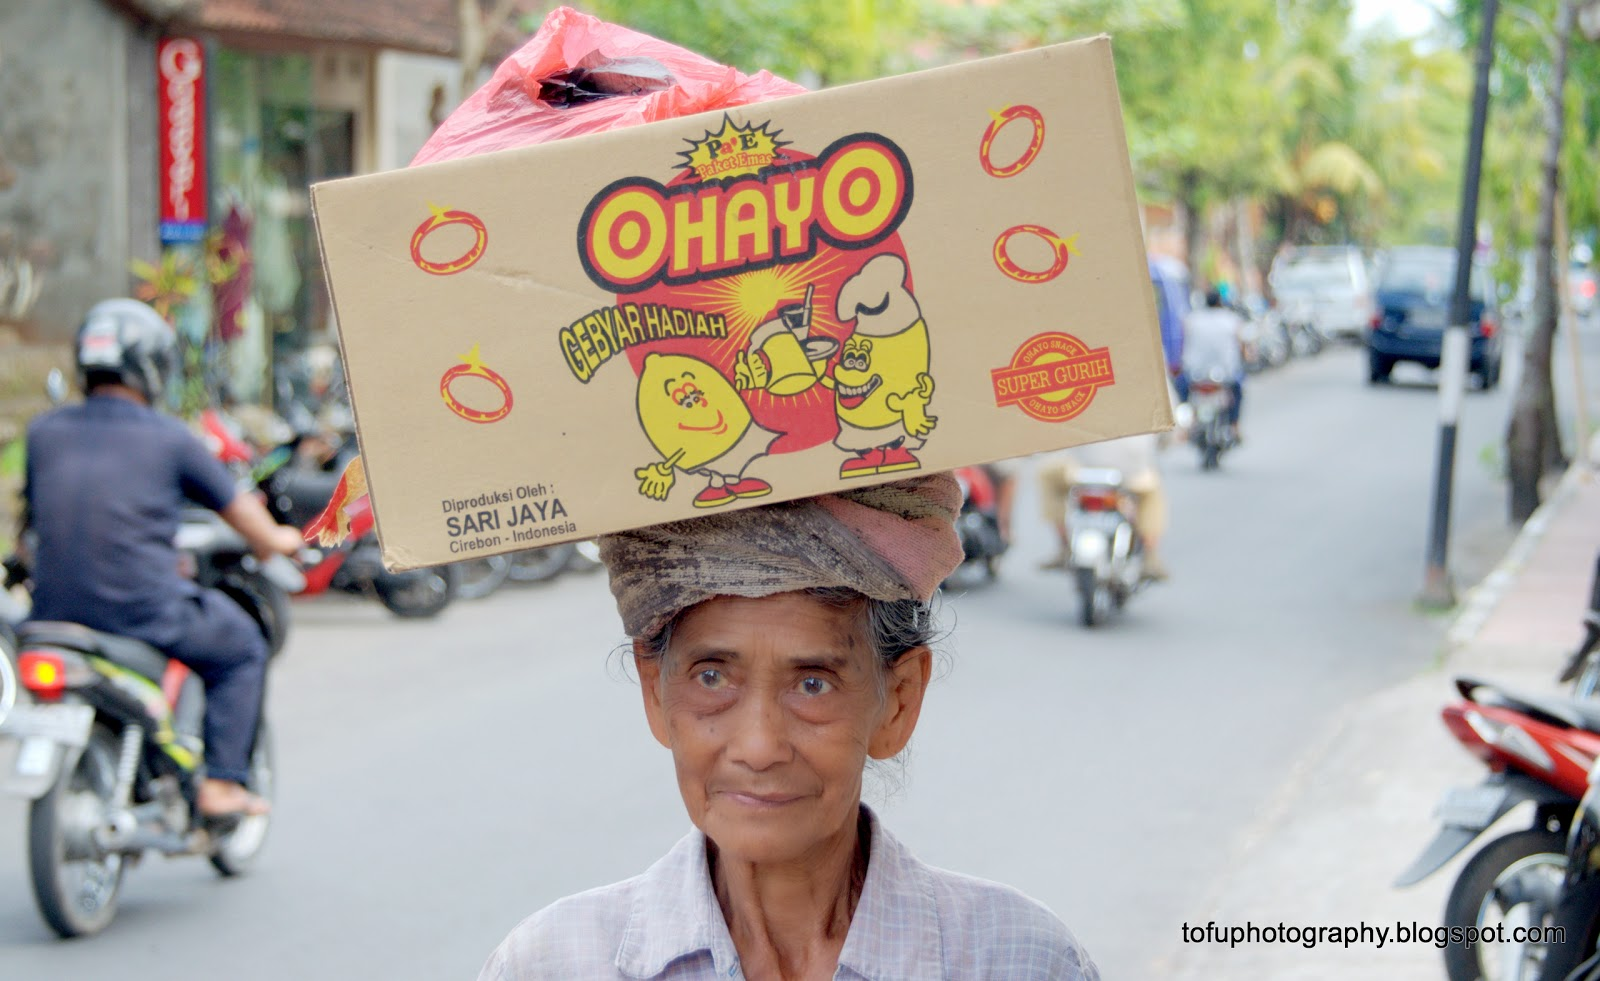 Tofu Photography Old Balinese Lady Carrying A Box On Her